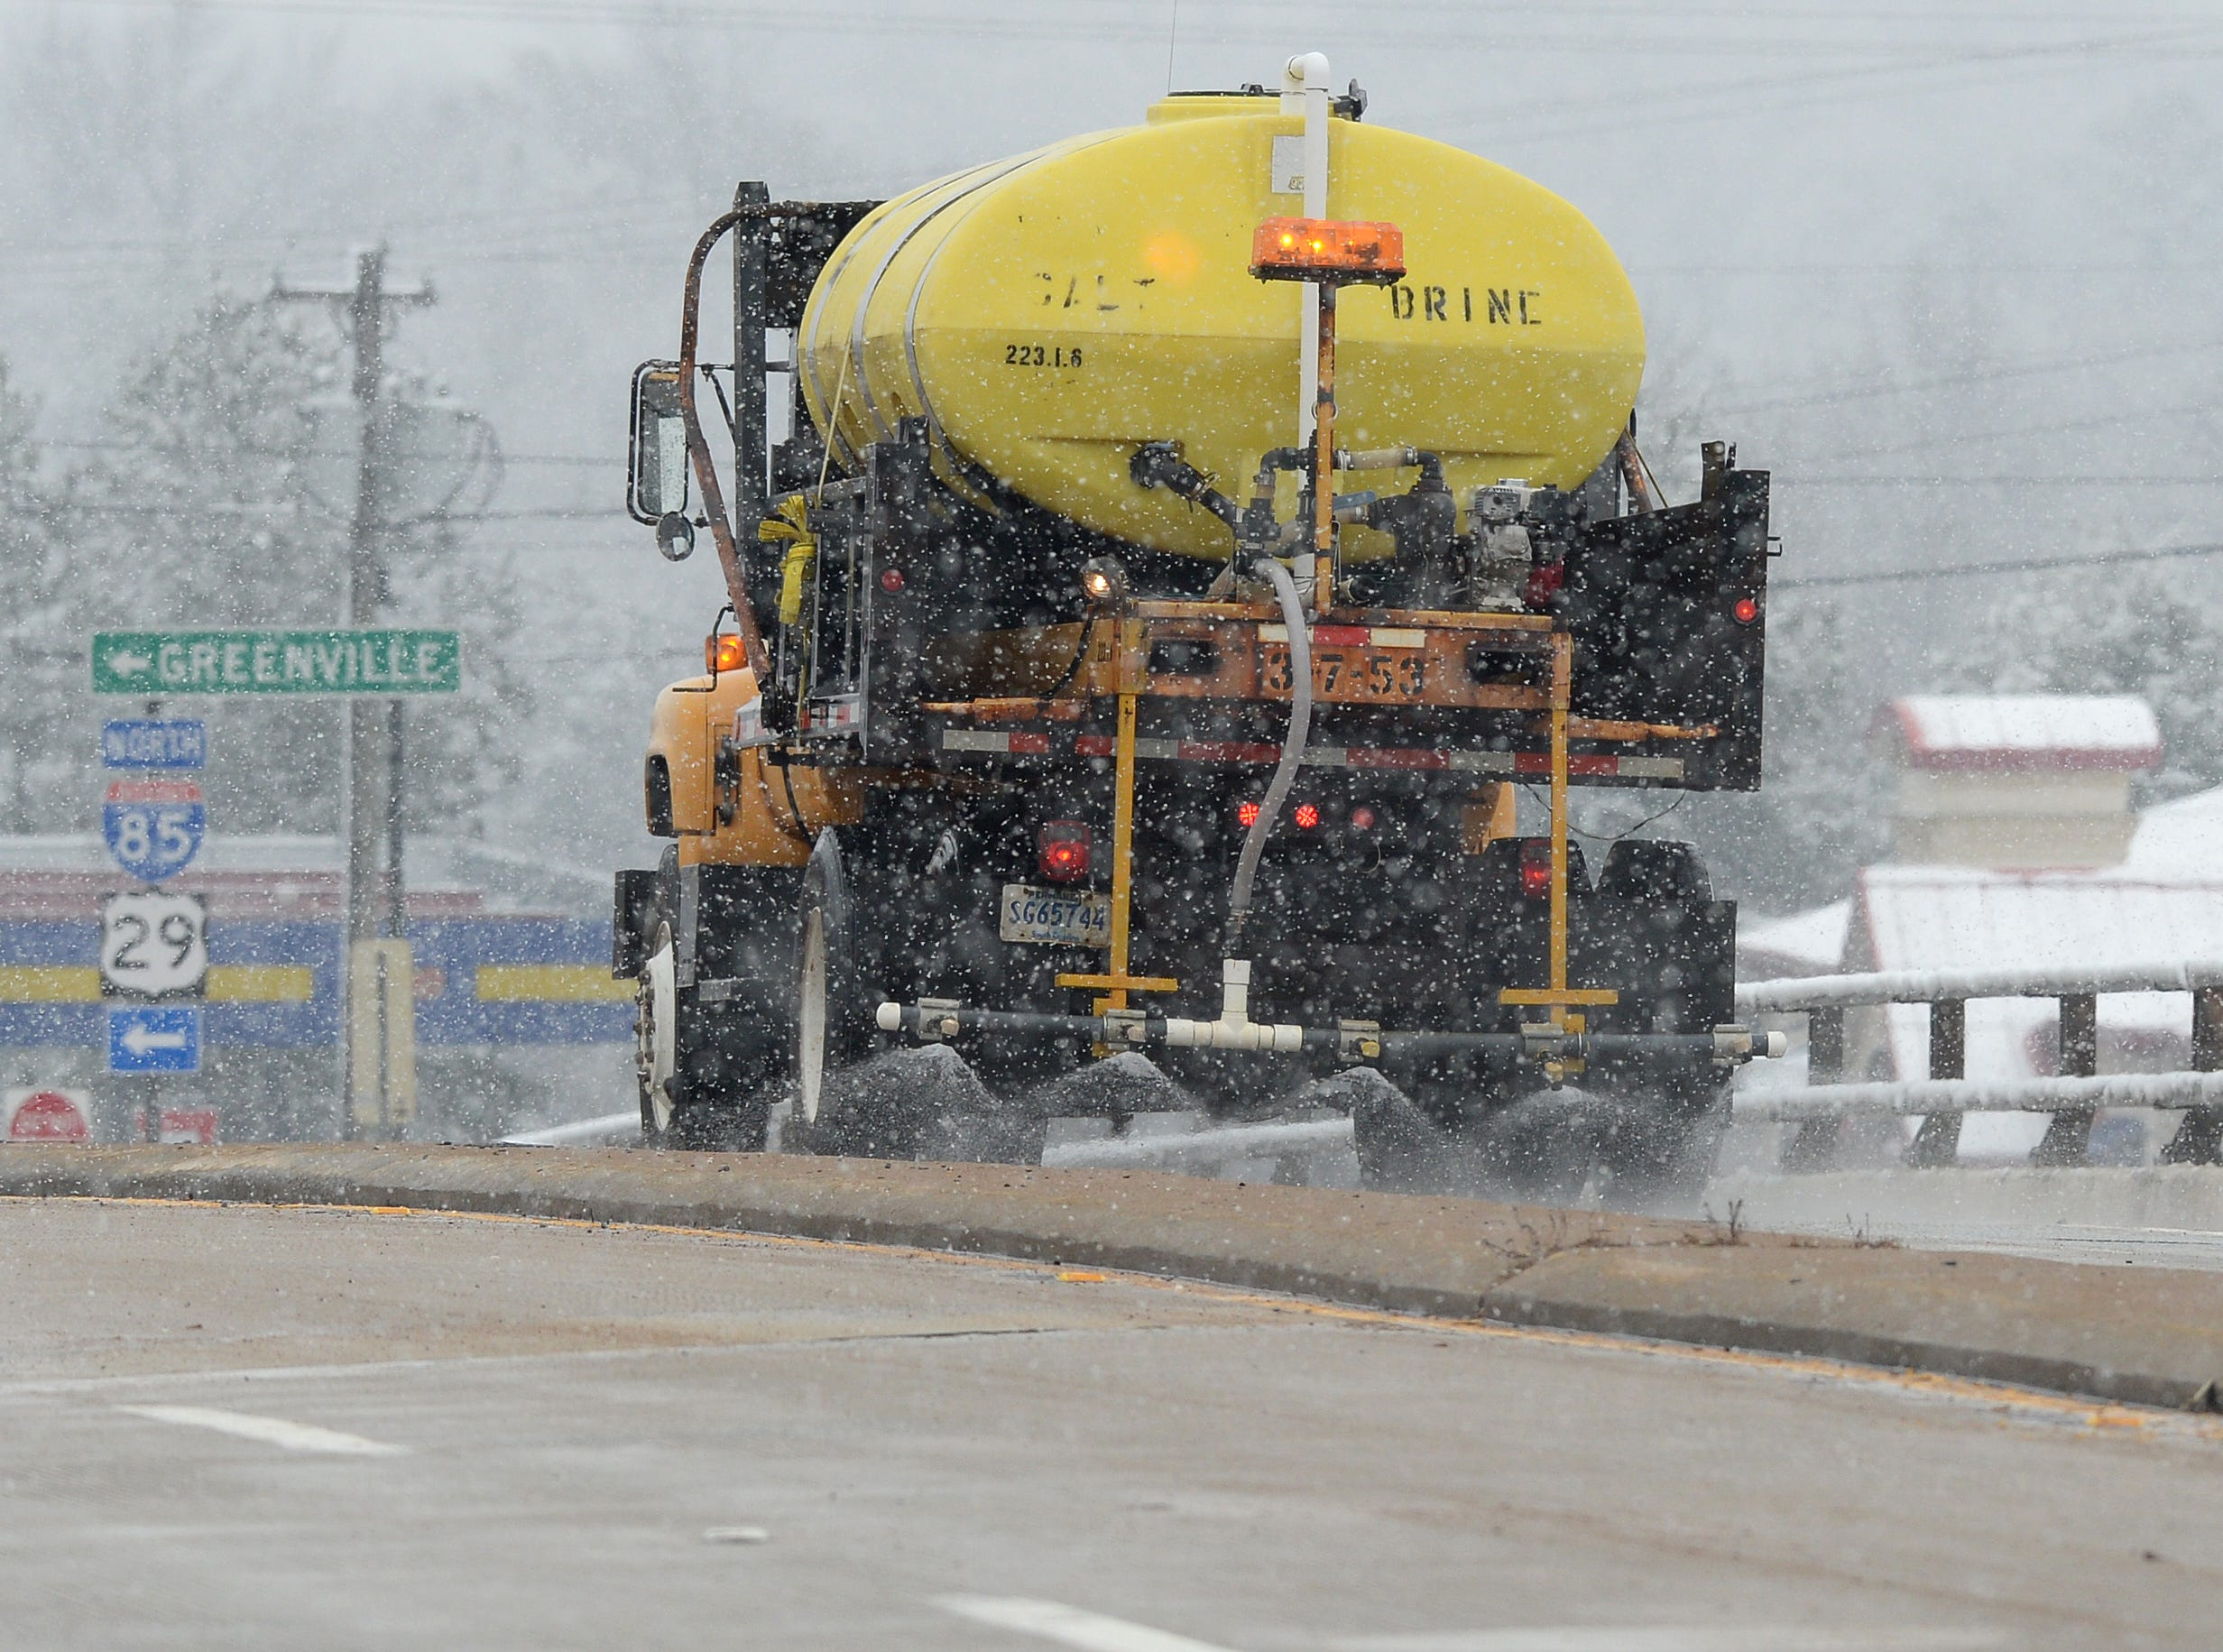 A South Carolina DOT truck spreads salt on a bridge over I-85 in Anderson County Tuesday, February 11, 2014.